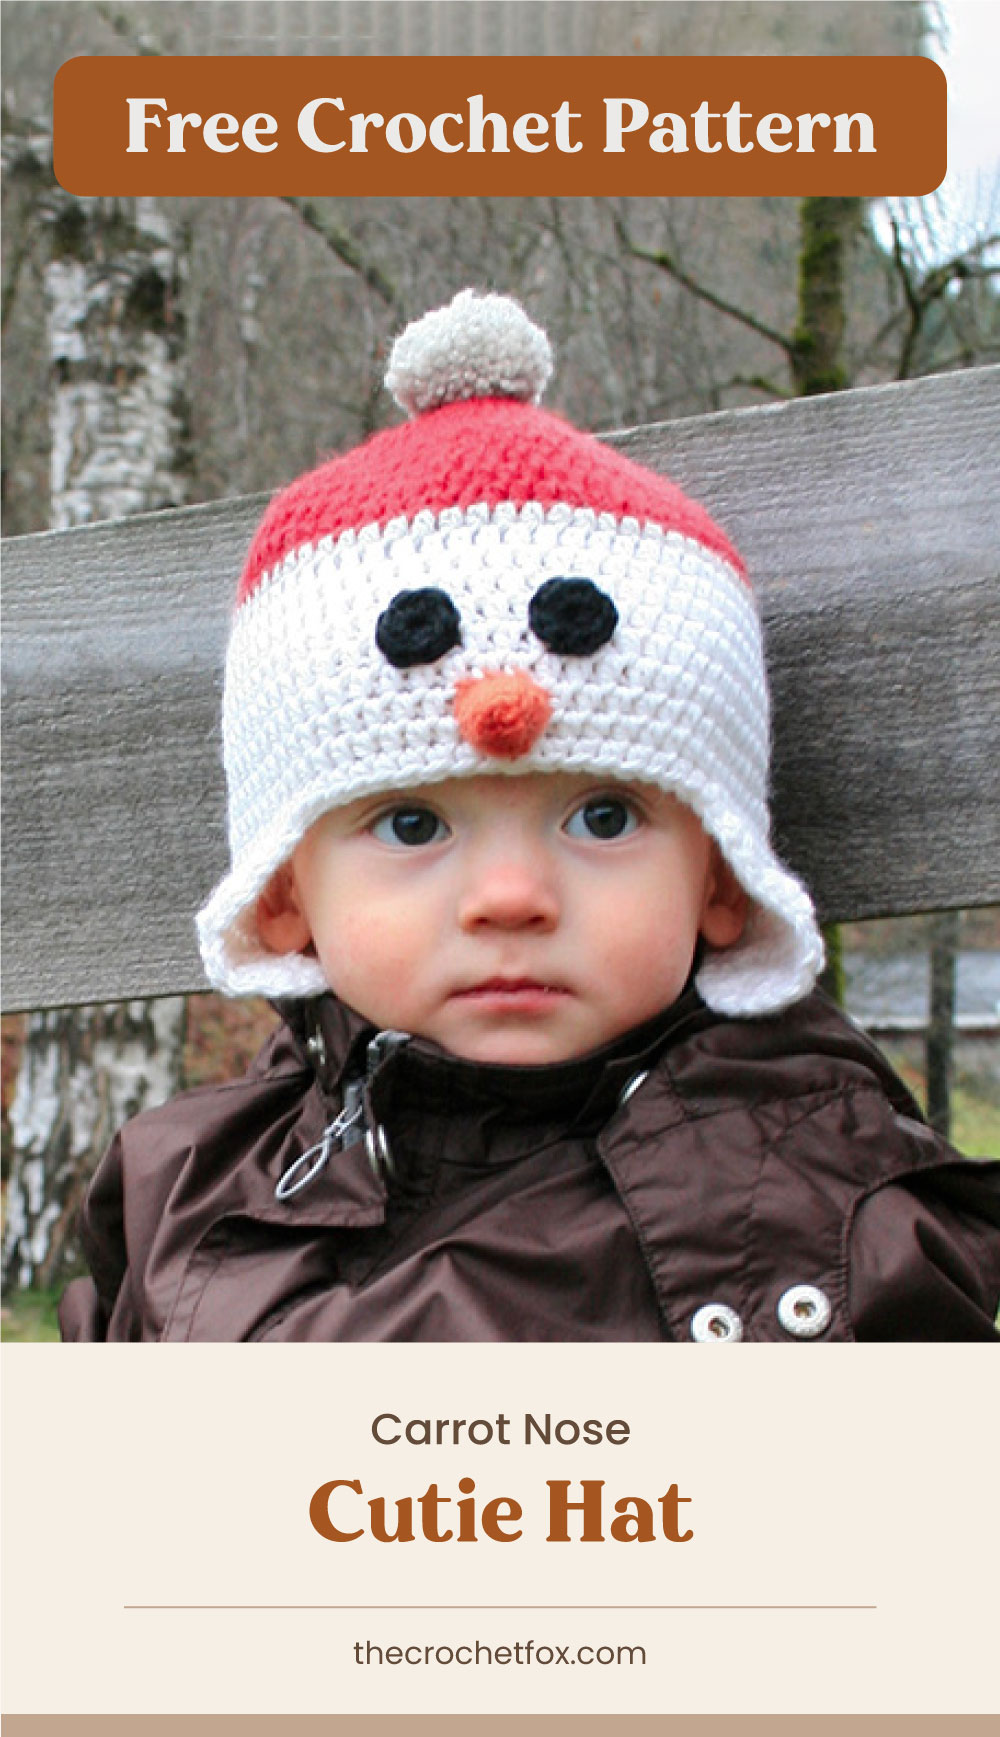 """Text area which says """"Free Crochet Pattern"""" next to a toddler wearing a snowman-inspired with a carrot nose crocheted hat followed by another text area which says """"Carrot Nose Cutie Hat, thecrochetfox.com"""""""